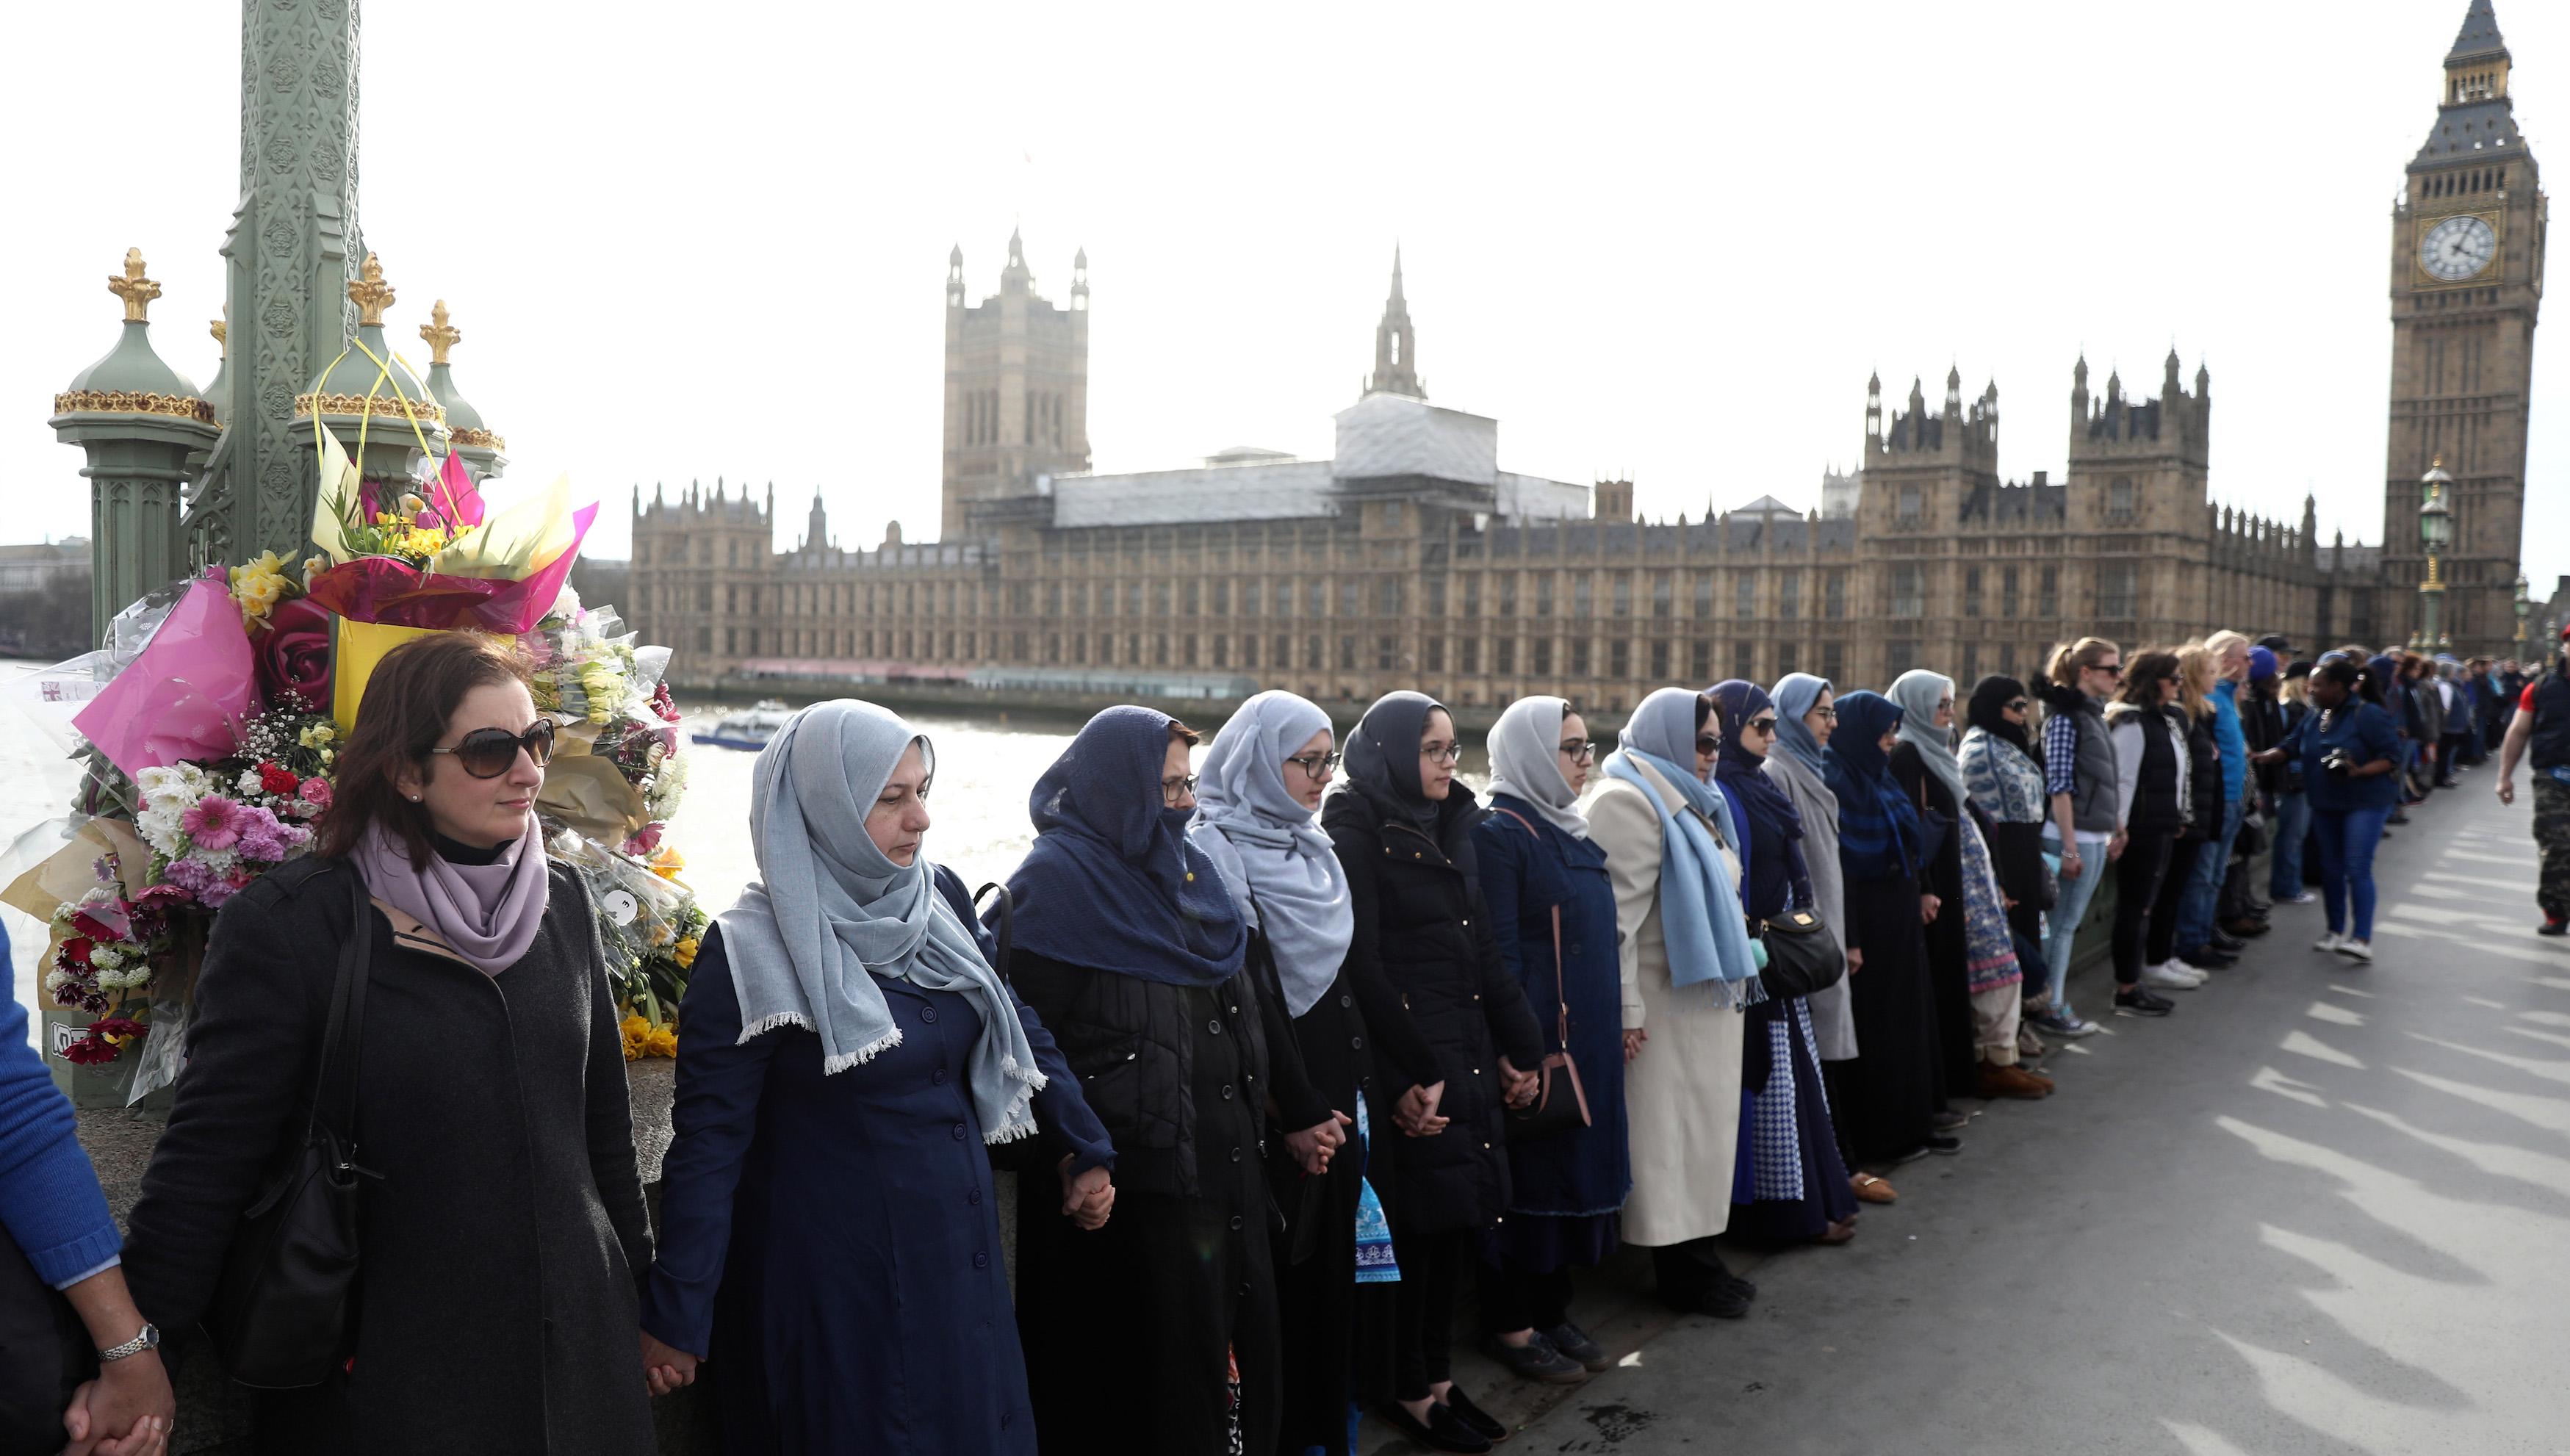 Participants in the Women's March, gather on Westminster Bridge to hold hands in silence, to remember victims of the attack in Westminster earlier in the week, in London, Britain March 26, 2017. REUTERS/Neil Hall - RTX32S55